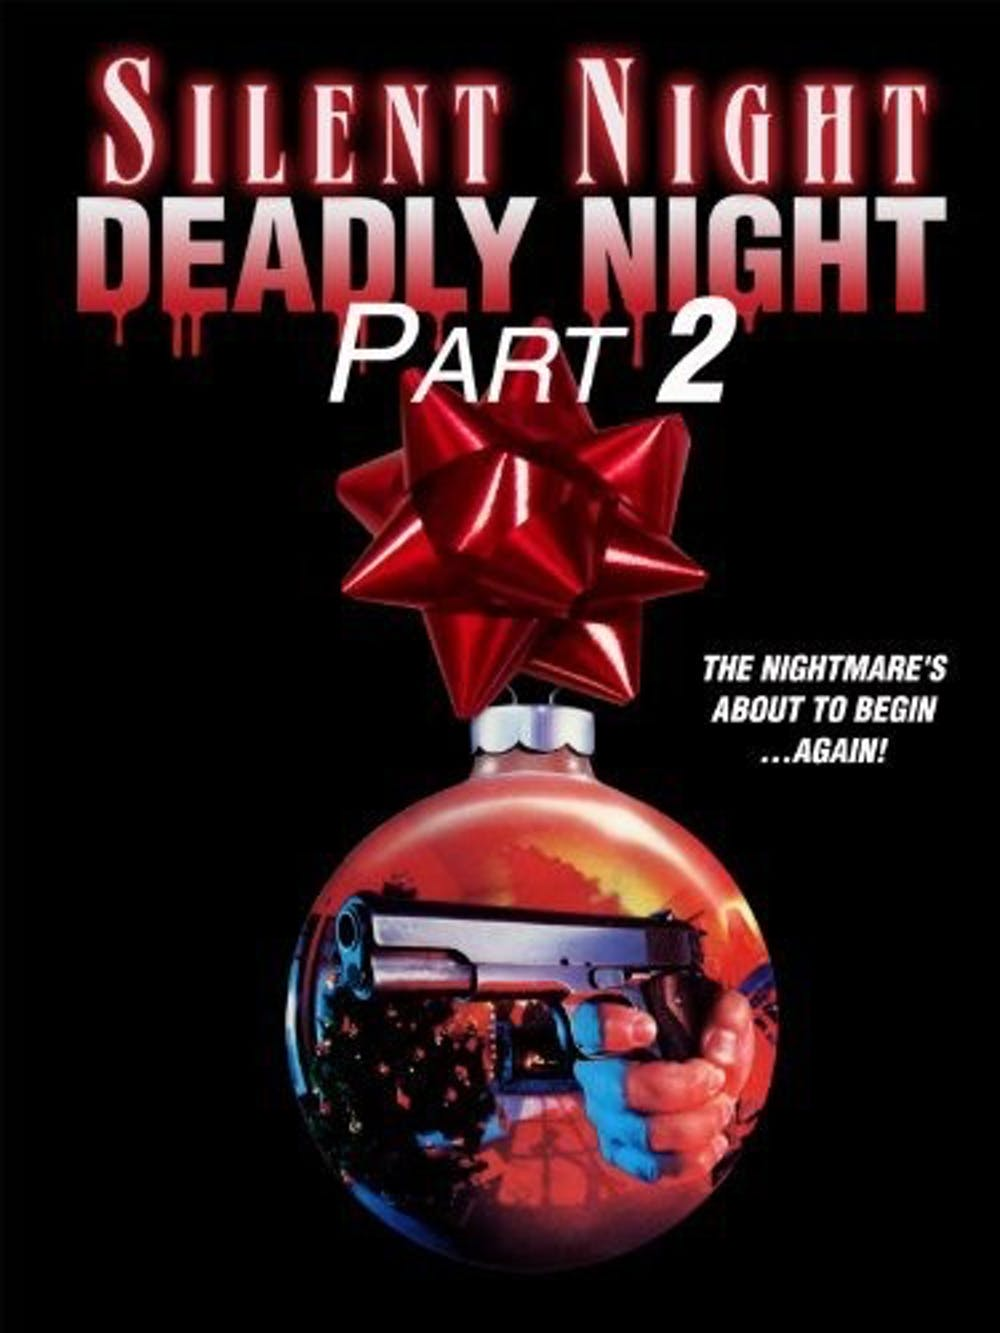 Grindhouse Review: 'Silent Night, Deadly Night Part 2'